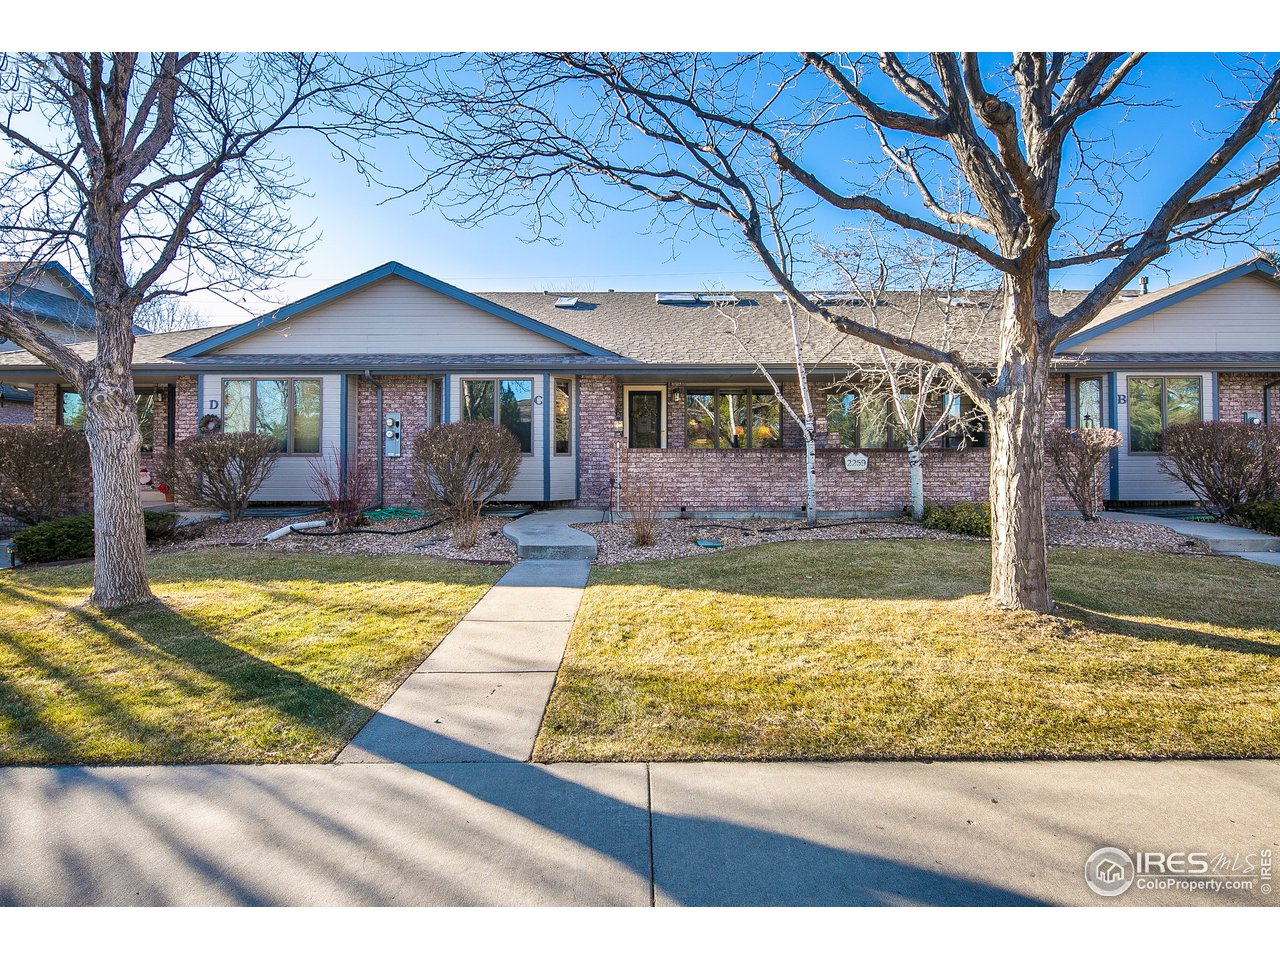 2259 46TH AVE CT, GREELEY, CO 80634